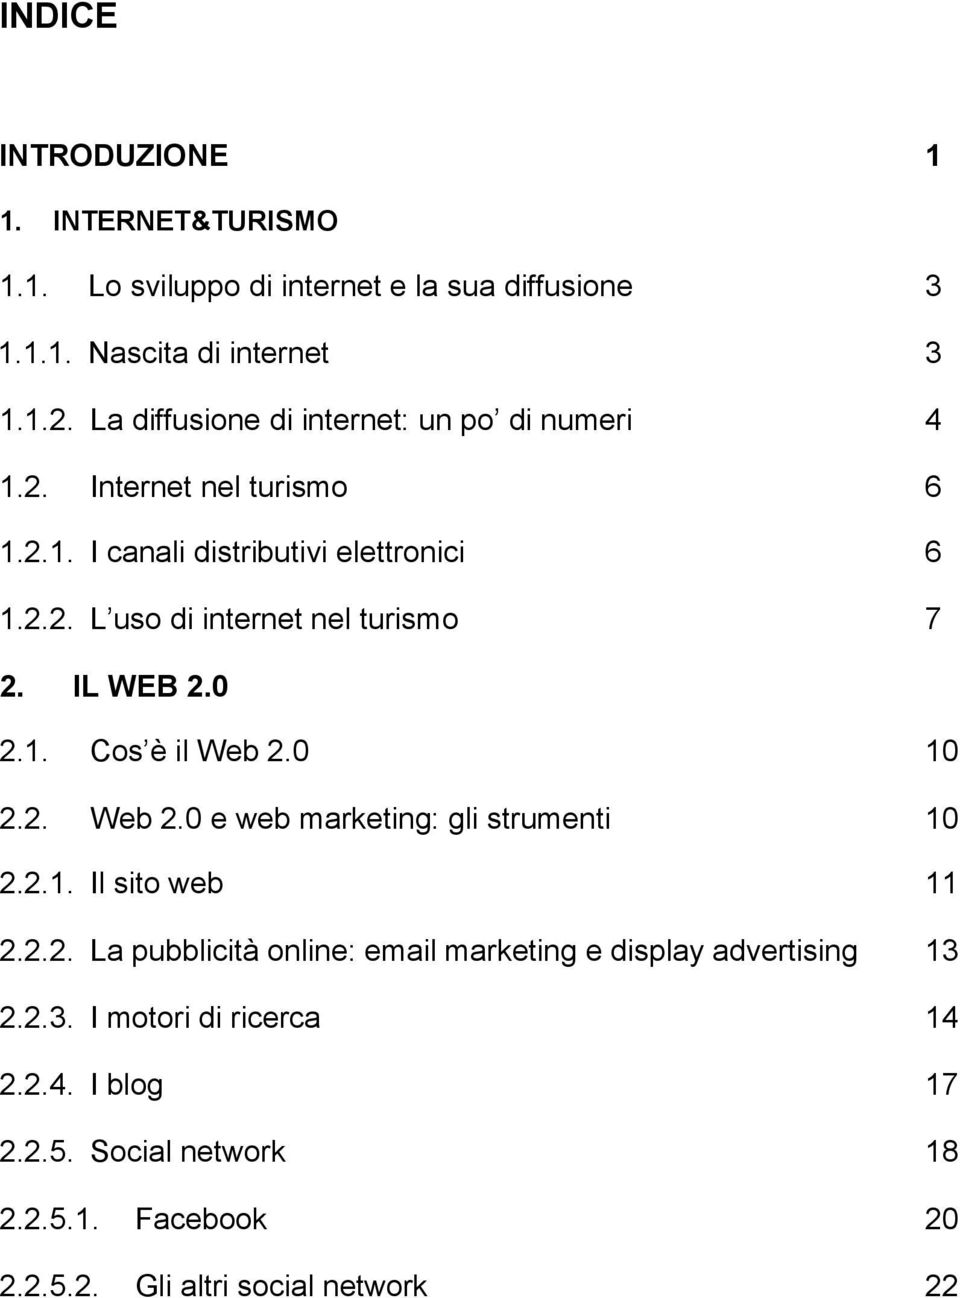 IL WEB 2.0 2.1. Cos è il Web 2.0 10 2.2. Web 2.0 e web marketing: gli strumenti 10 2.2.1. Il sito web 11 2.2.2. La pubblicità online: email marketing e display advertising 13 2.